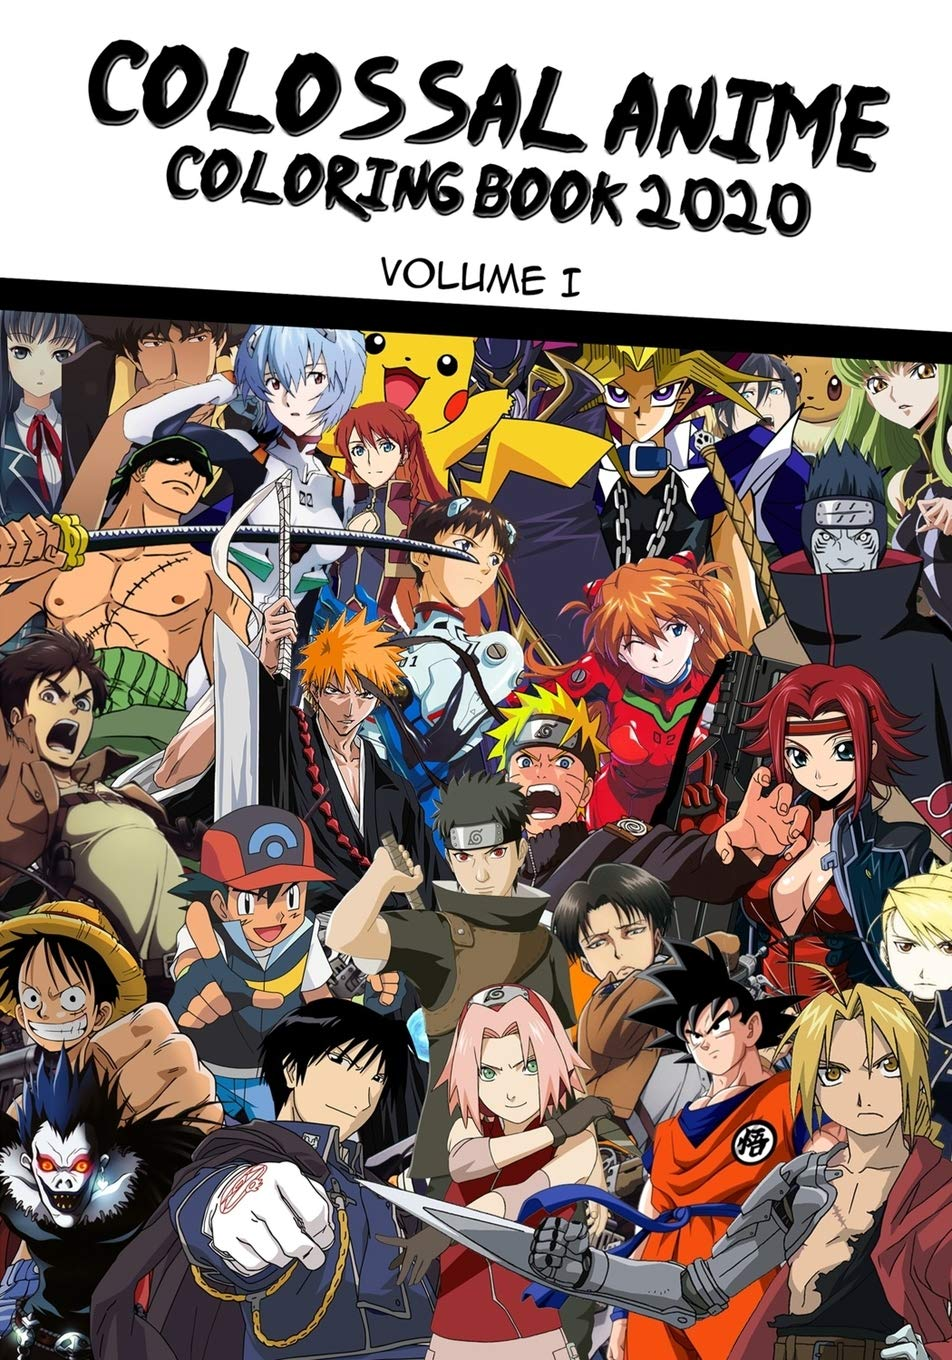 - Amazon.com: The Colossal Anime Coloring Book 2020 - Volume 1: Over